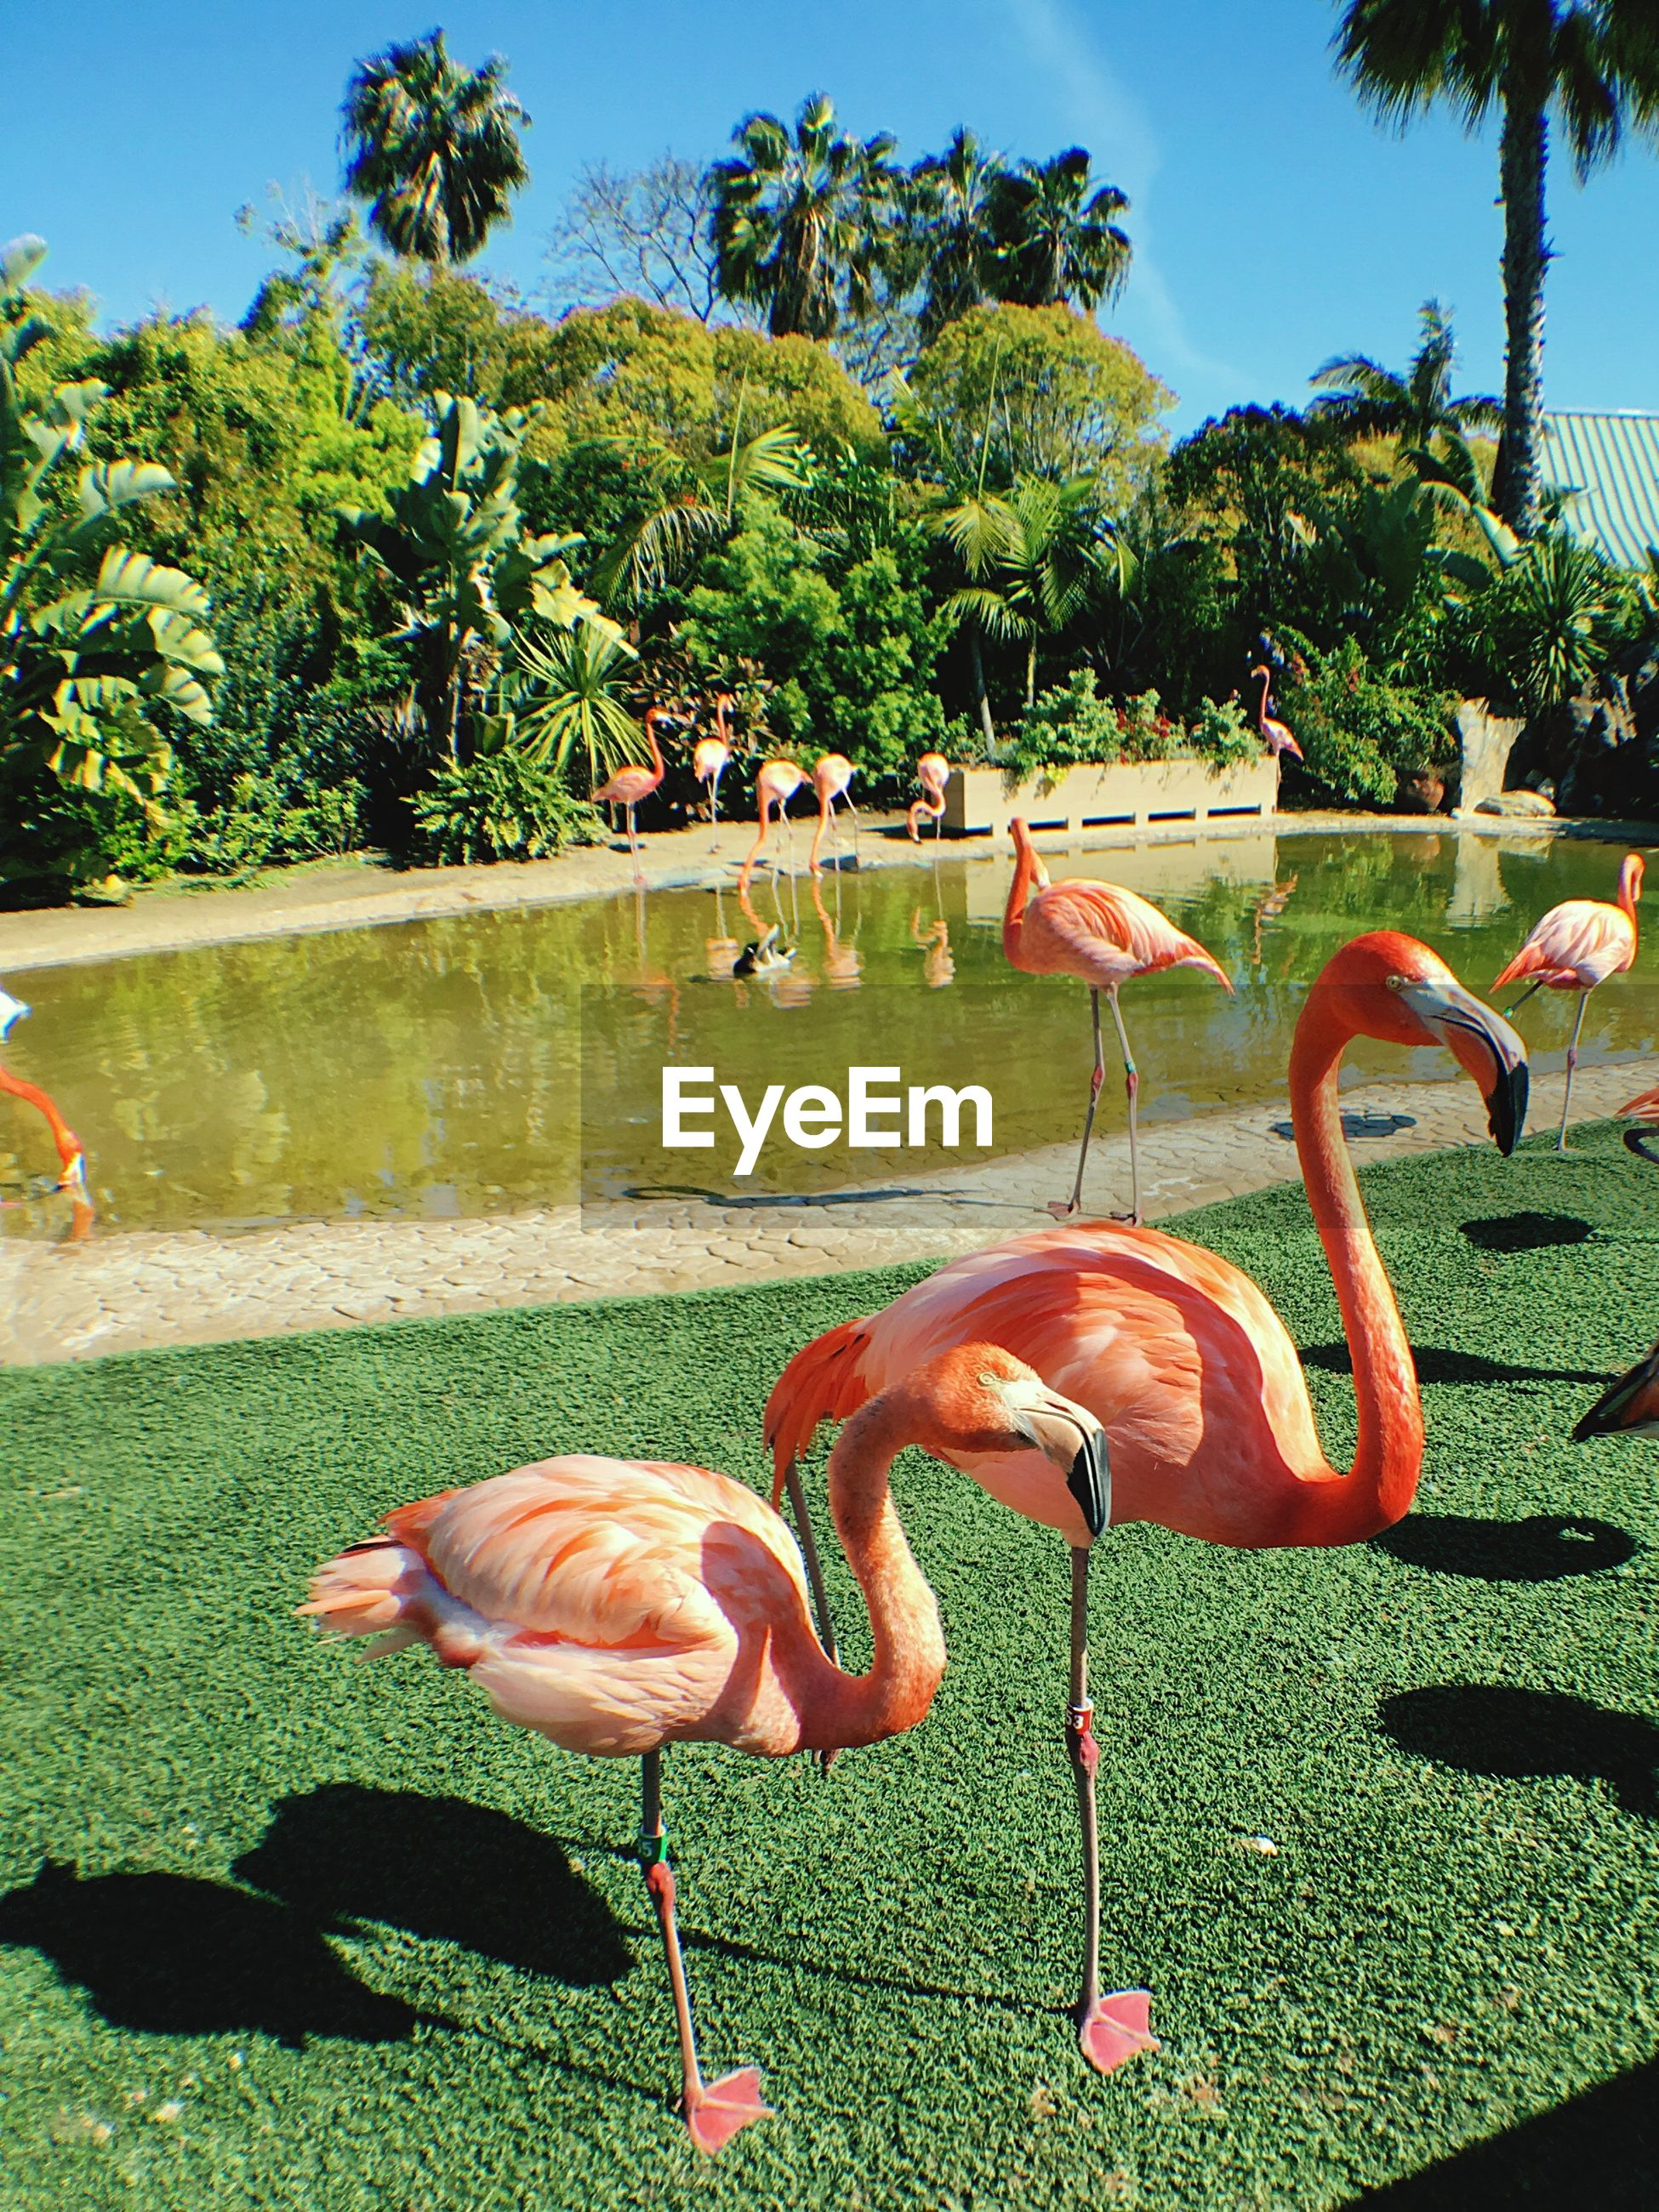 Flamingoes on grass at seaworld san diego